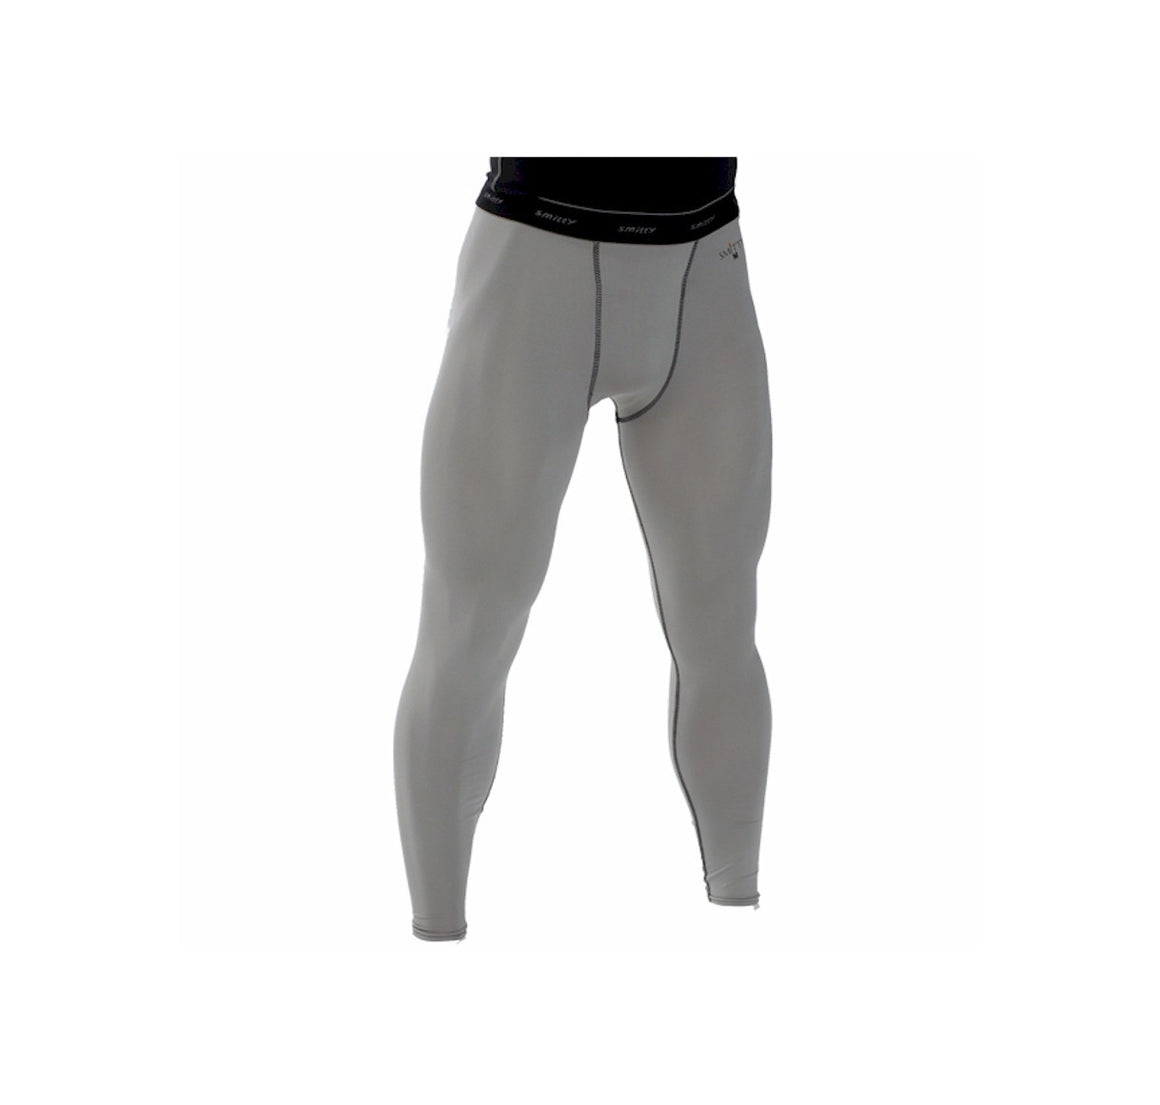 Smitty Grey Compression Tights w/ Cup Pocket - Grey